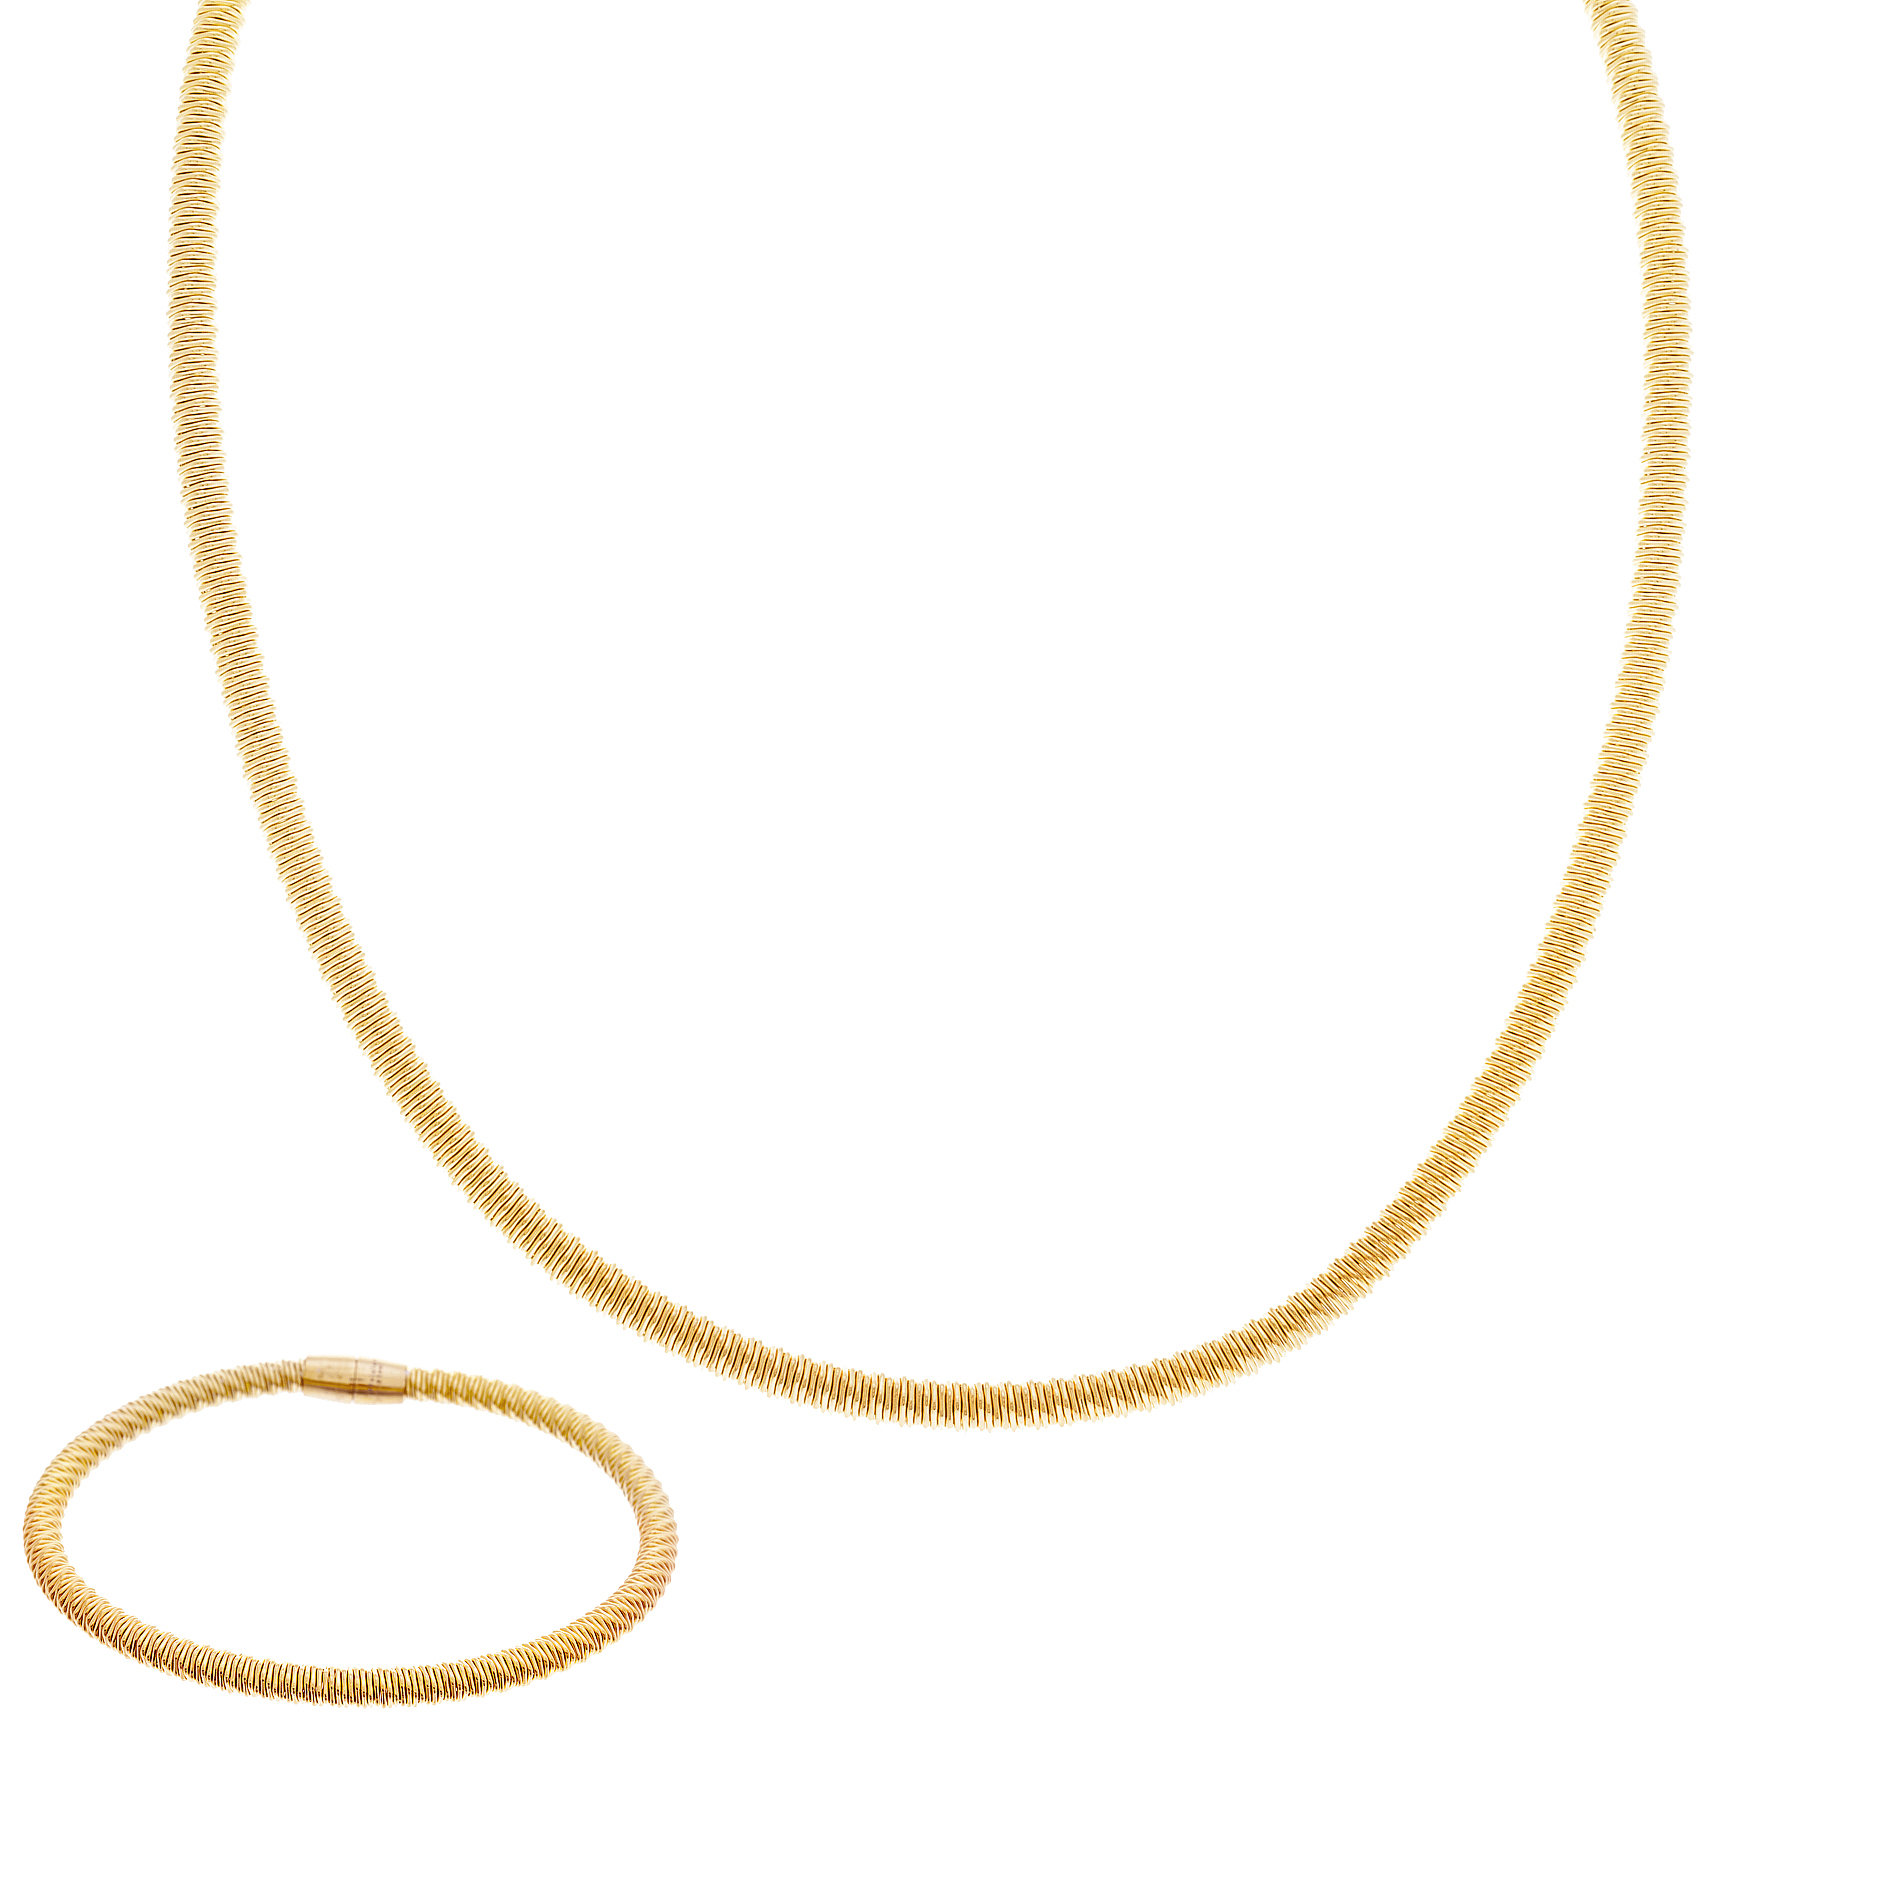 "Gold Tone Stainless Steel Snake Chain 17.5"" Necklace and 7.5"" Bracelet Set"